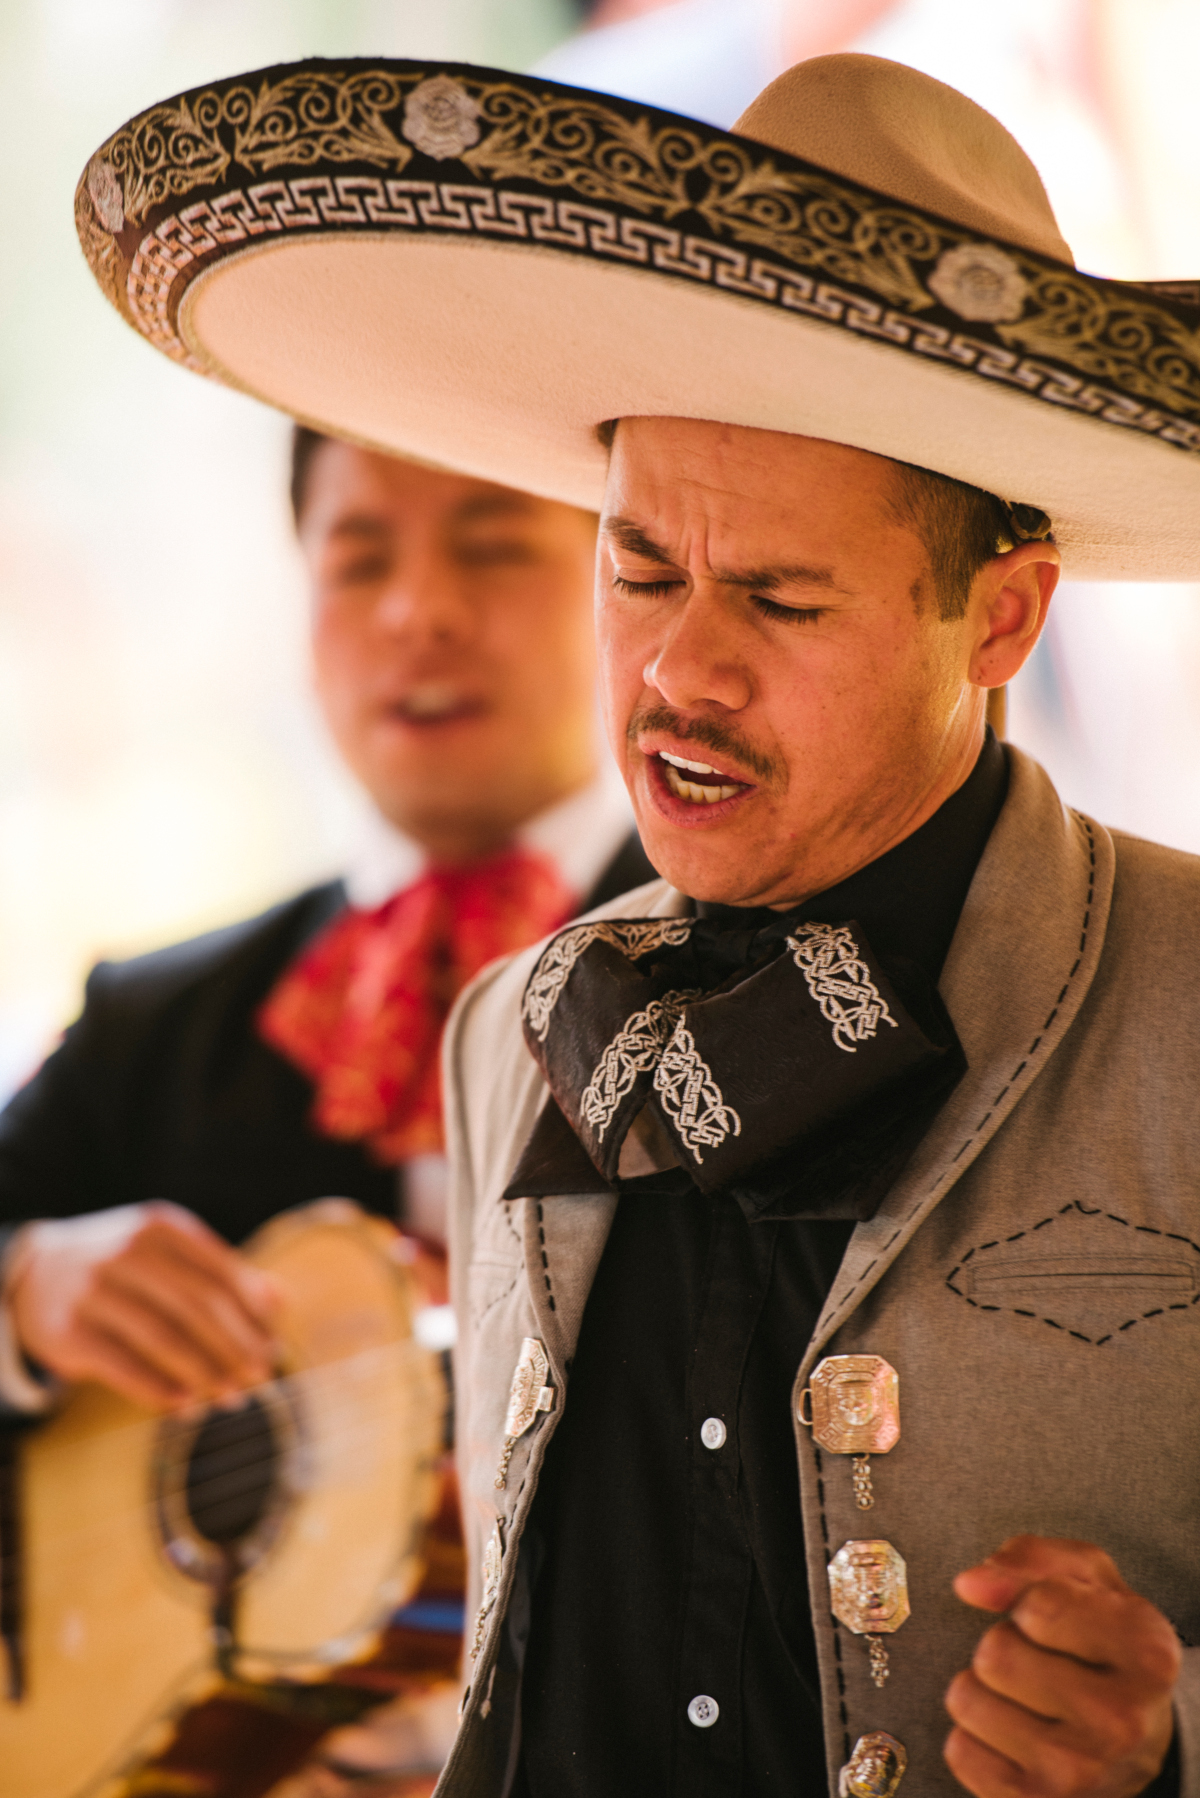 It's Time to Experience the Real Mexico